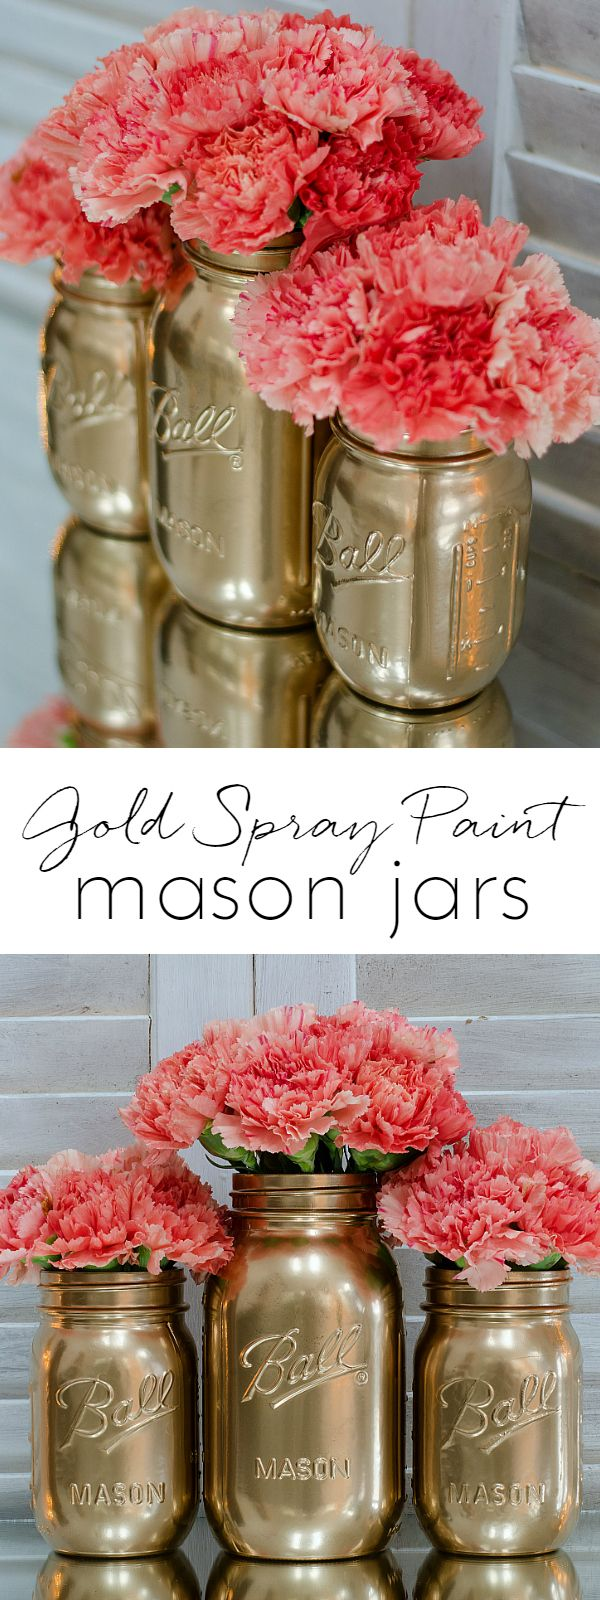 Crafts With Mason Jars Best 25 Jar Crafts Ideas On Pinterest Jars Mason Jar Diy And